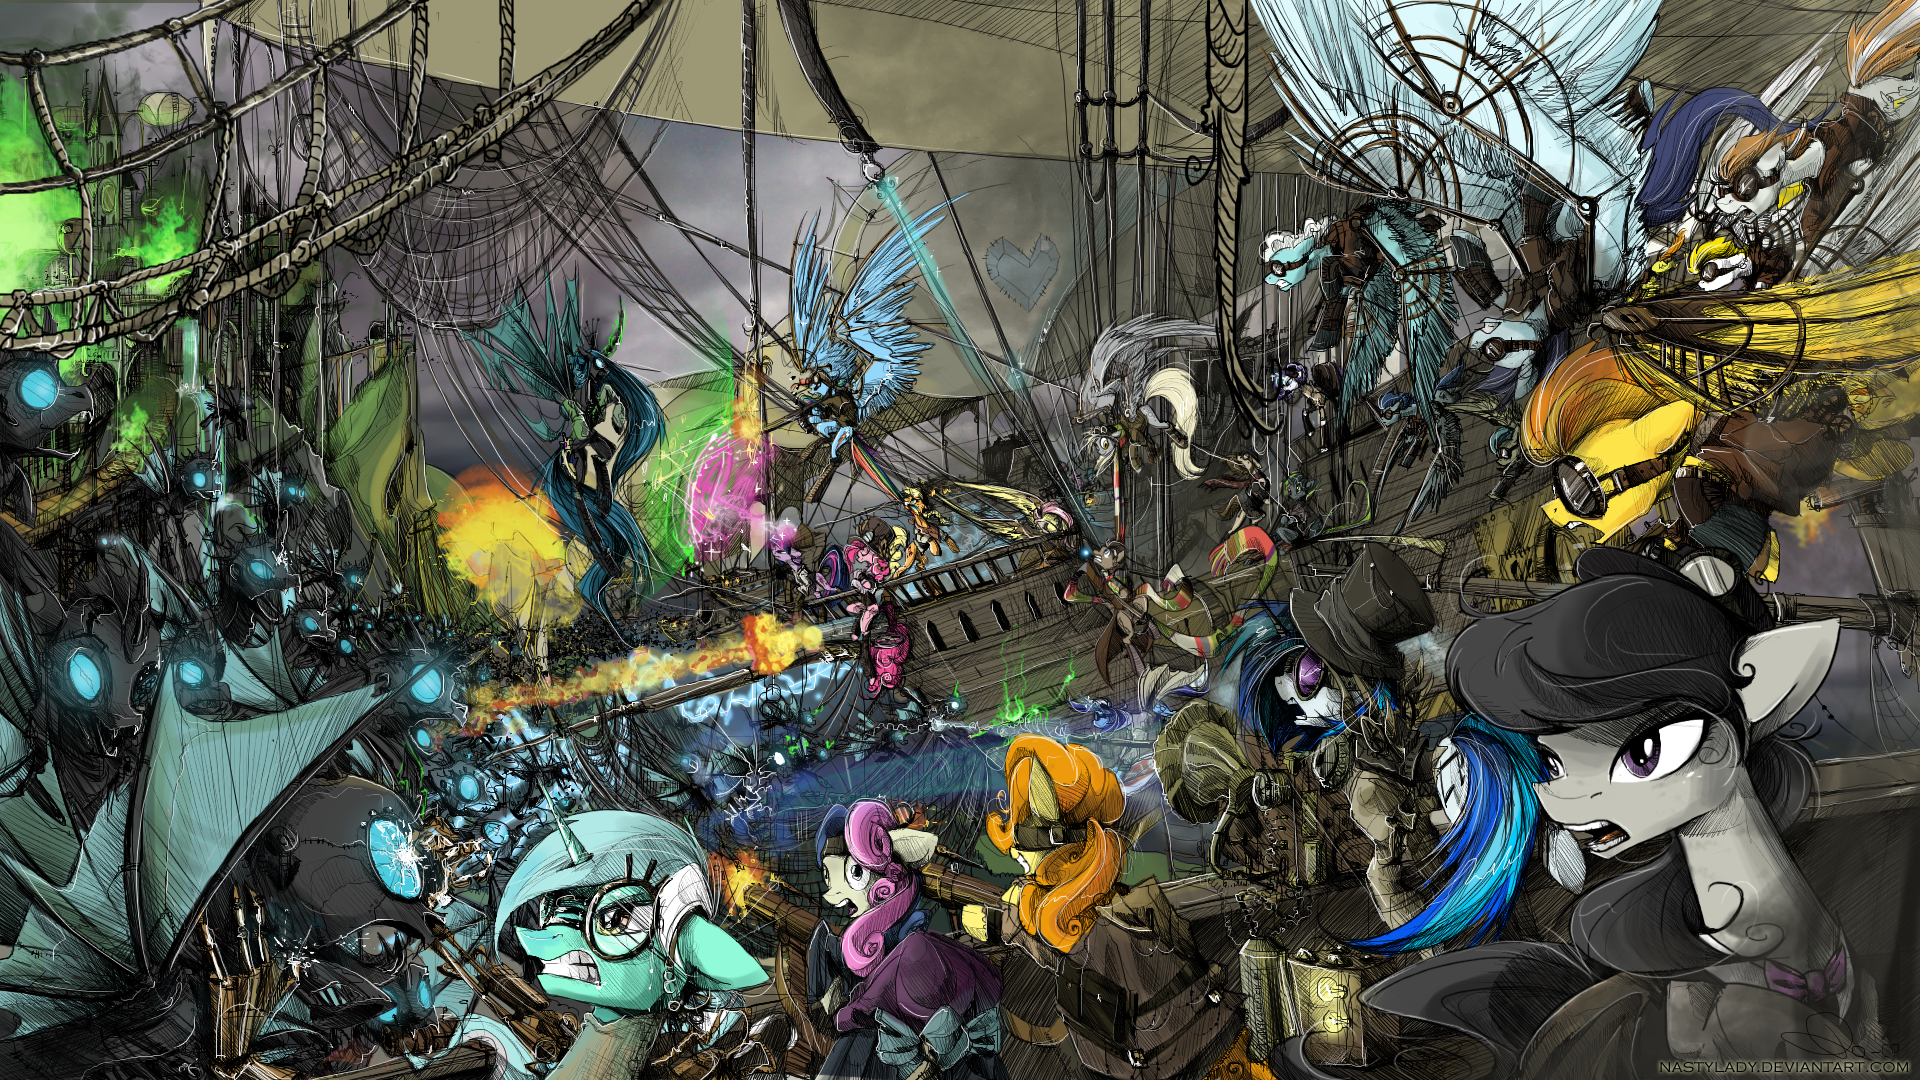 This Is War By Nastylady On Deviantart A Steampunk Mlp Mashup